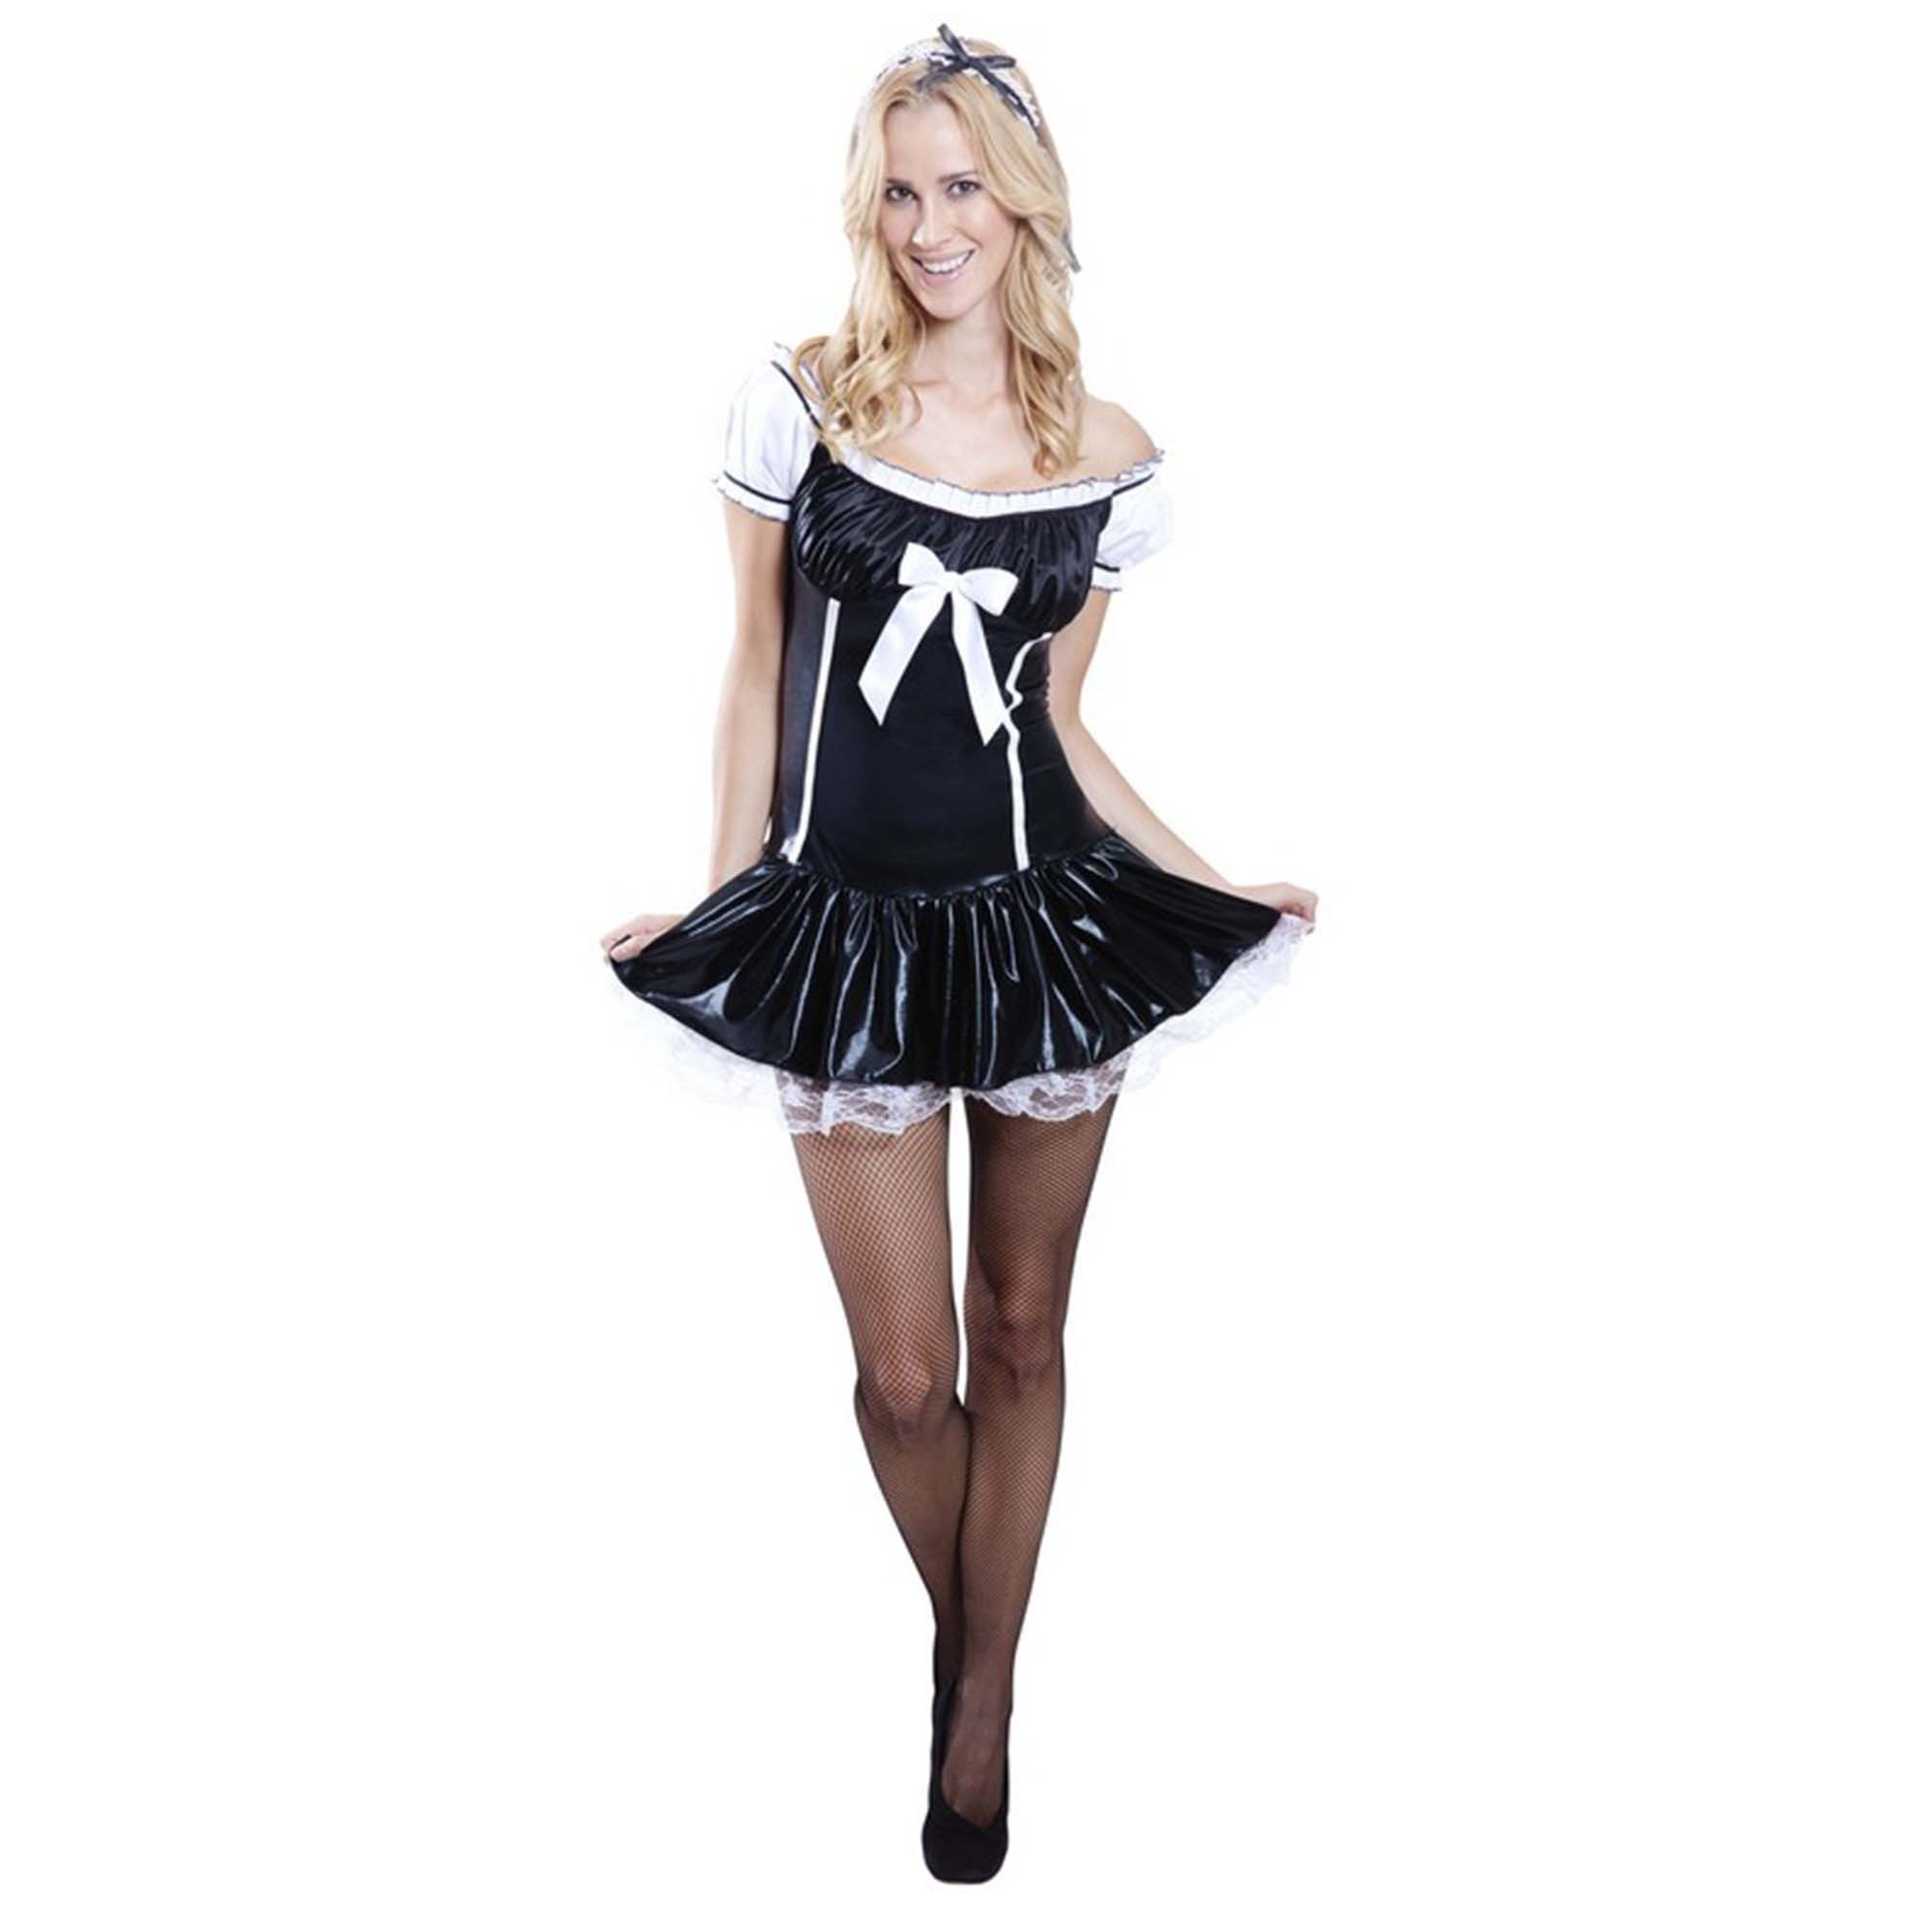 French Maid Costume (Small)  - Adult